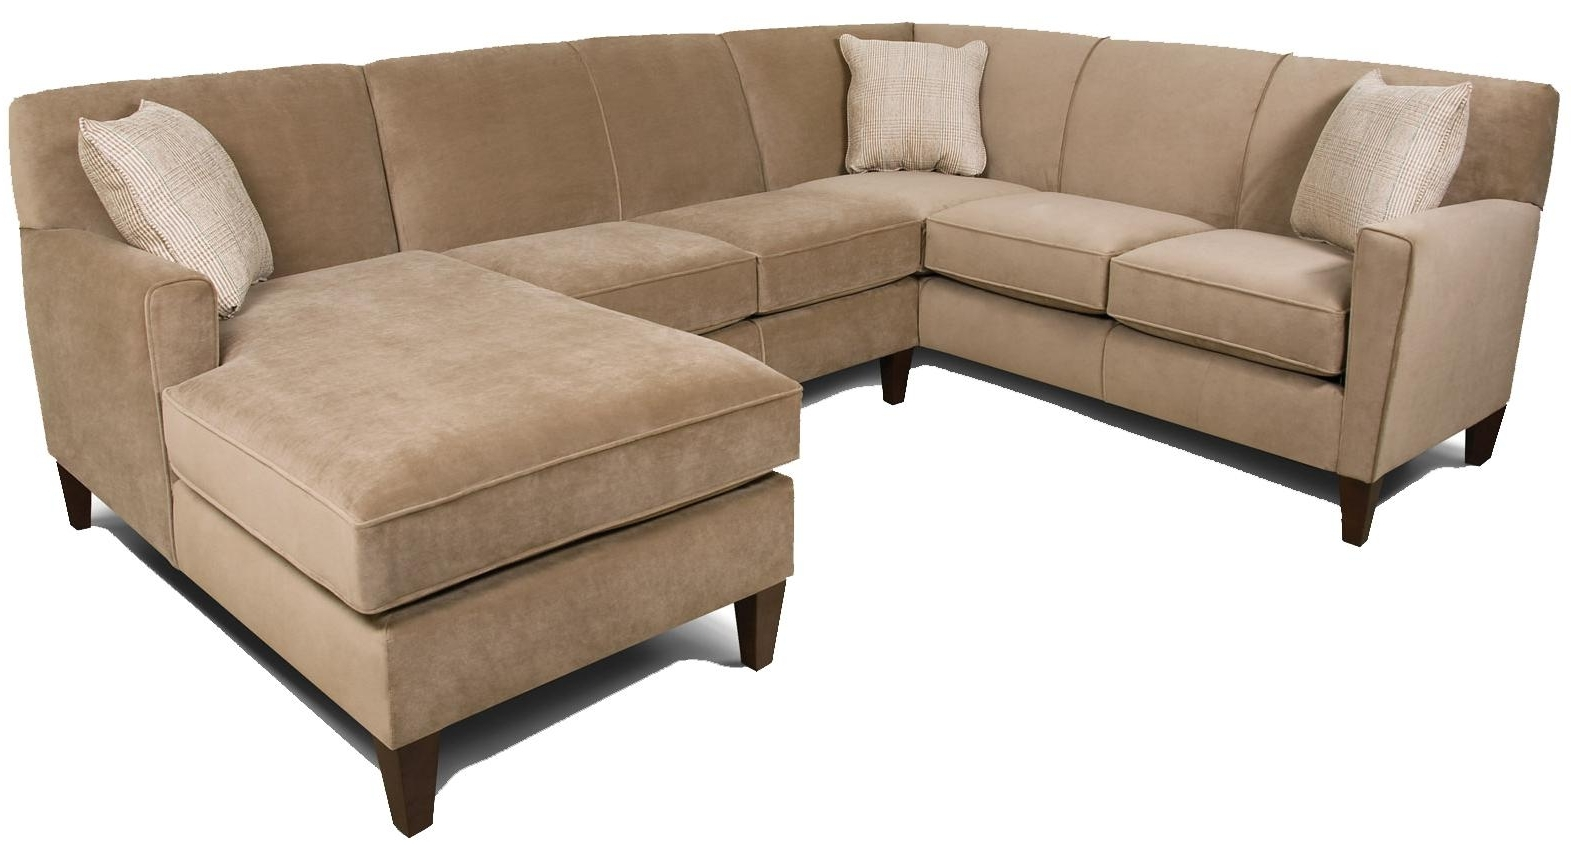 England Sectional Sofas Regarding 2017 England Collegedale Contemporary 3 Piece Sectional Sofa With Raf (View 15 of 15)